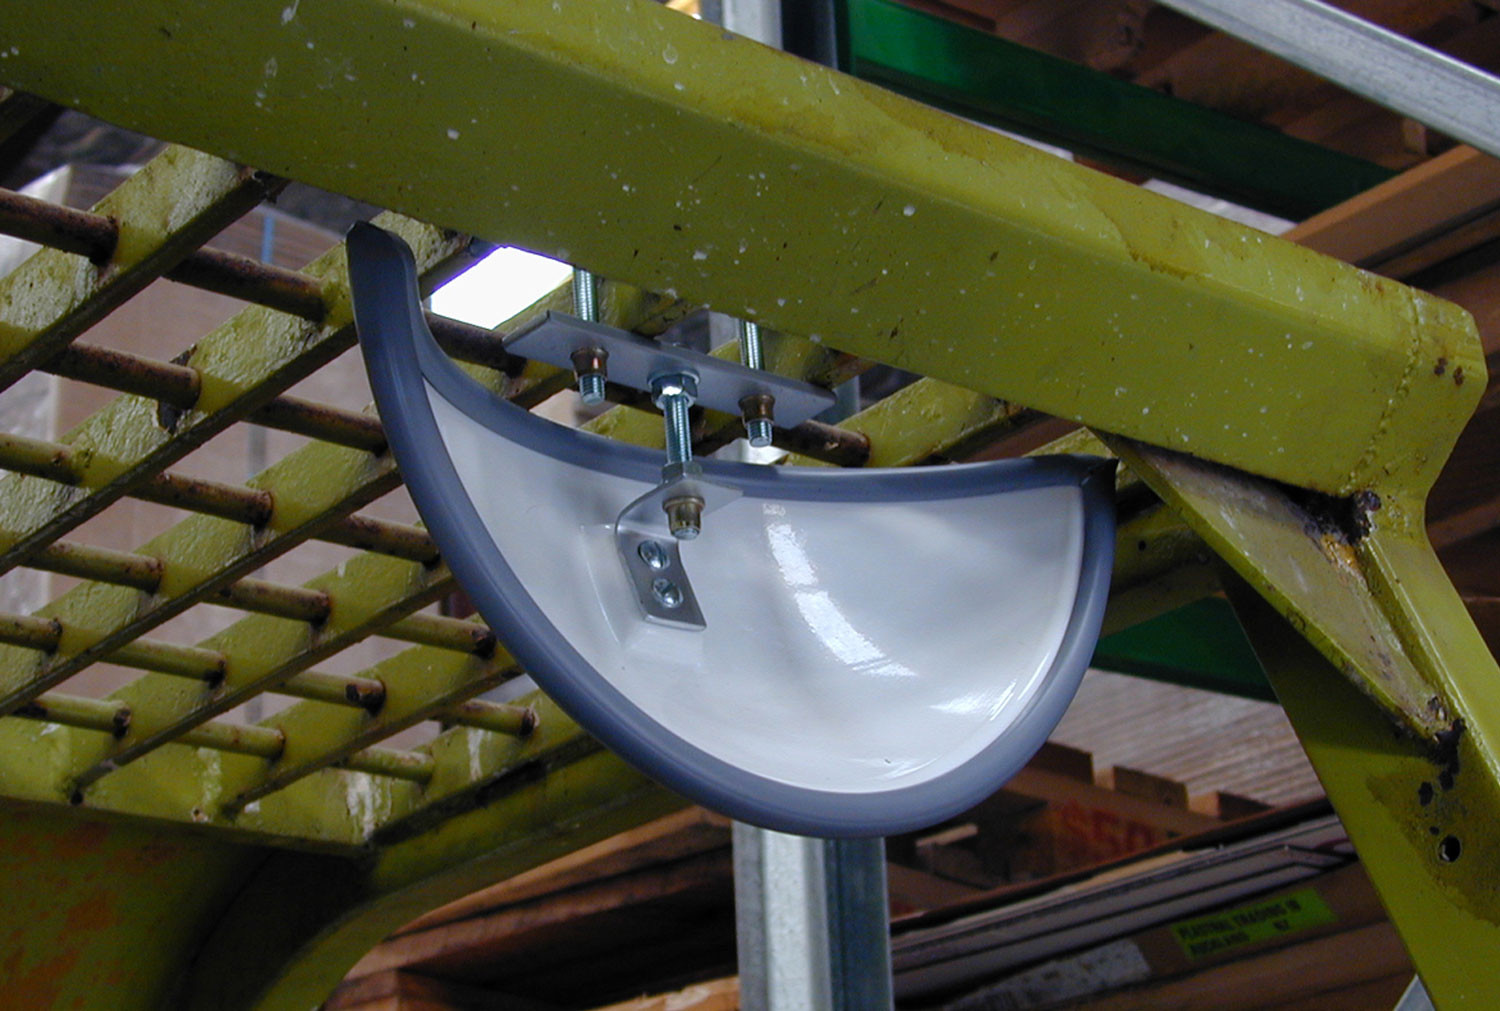 Fork Lift Rear View Interior Mirror 300x150mm